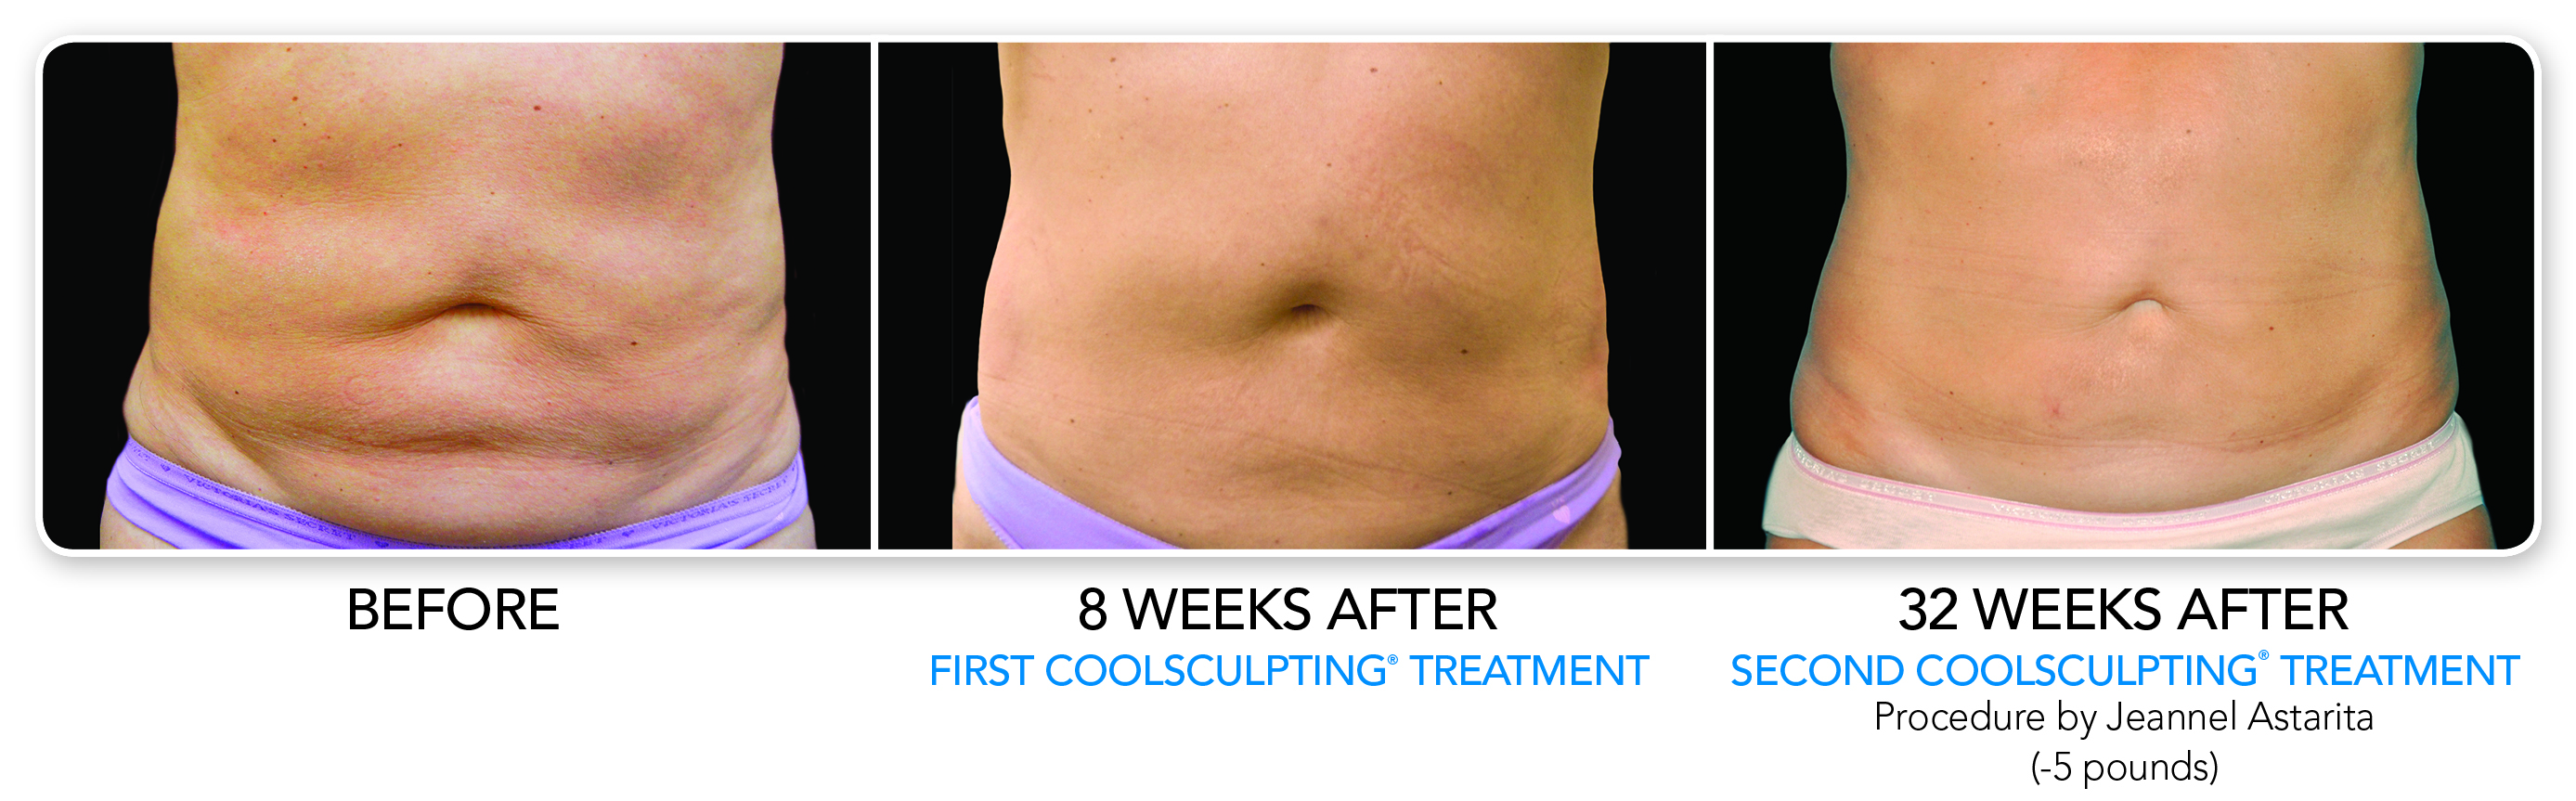 Coolsculpting before/after